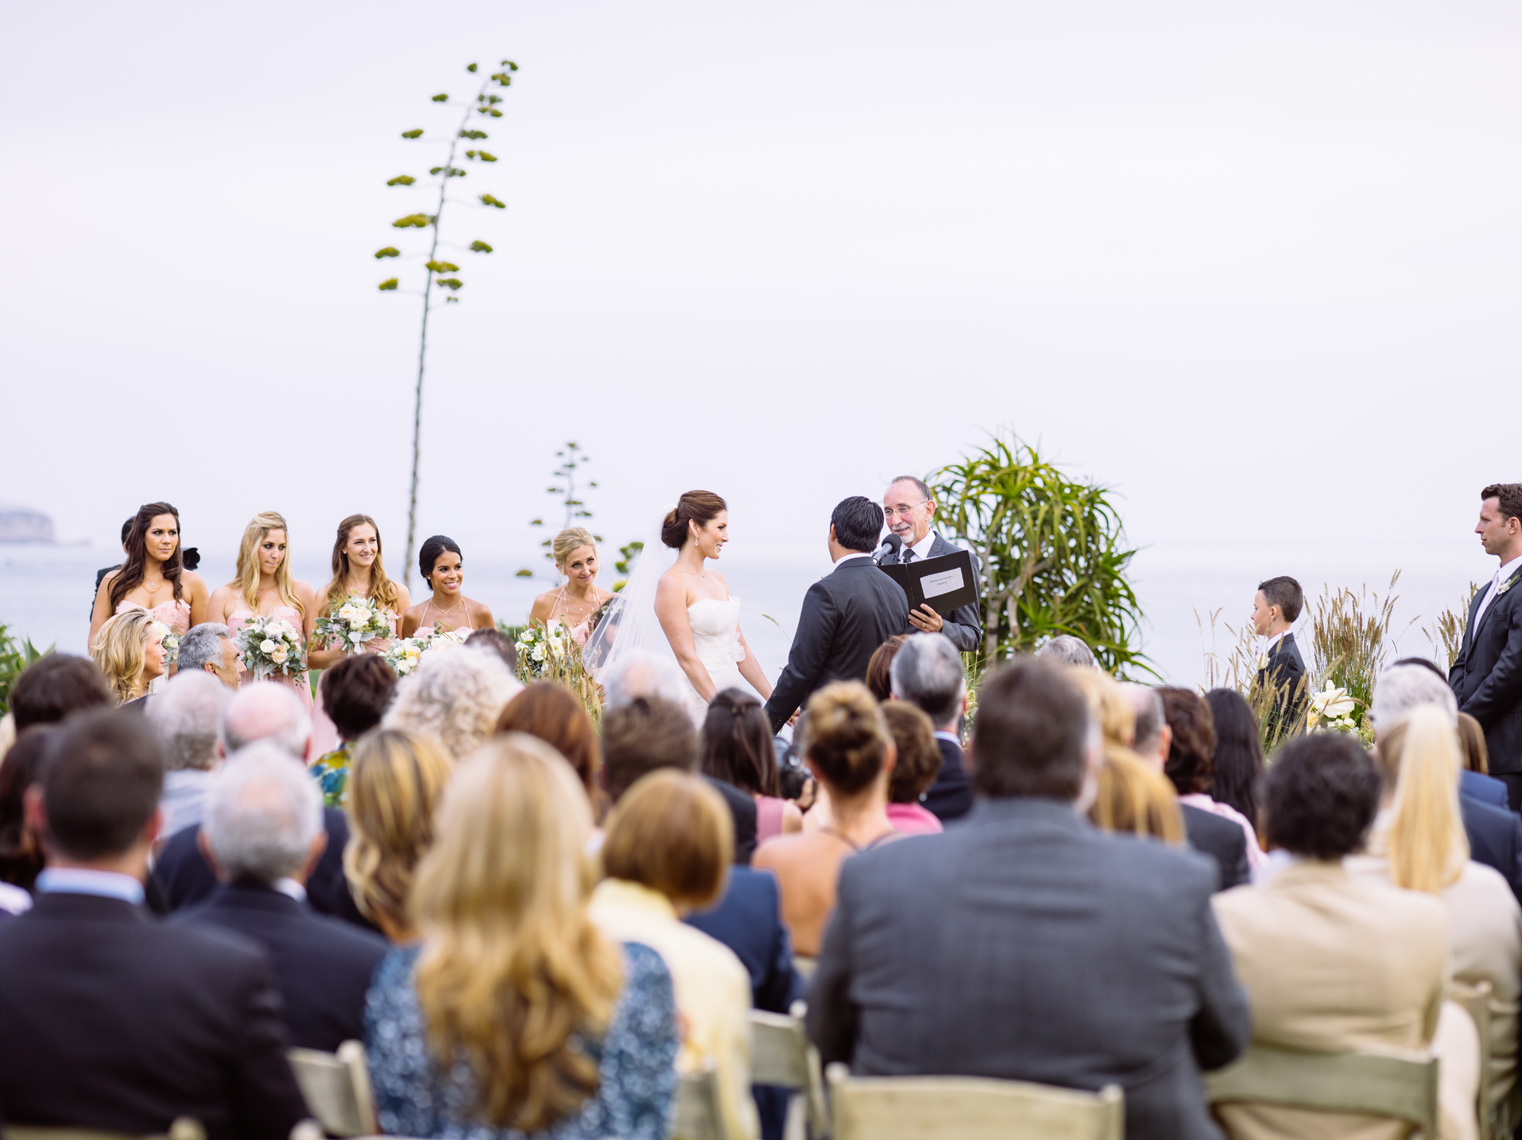 Wedding ceremony at Montage Resort, Laguna Beach.